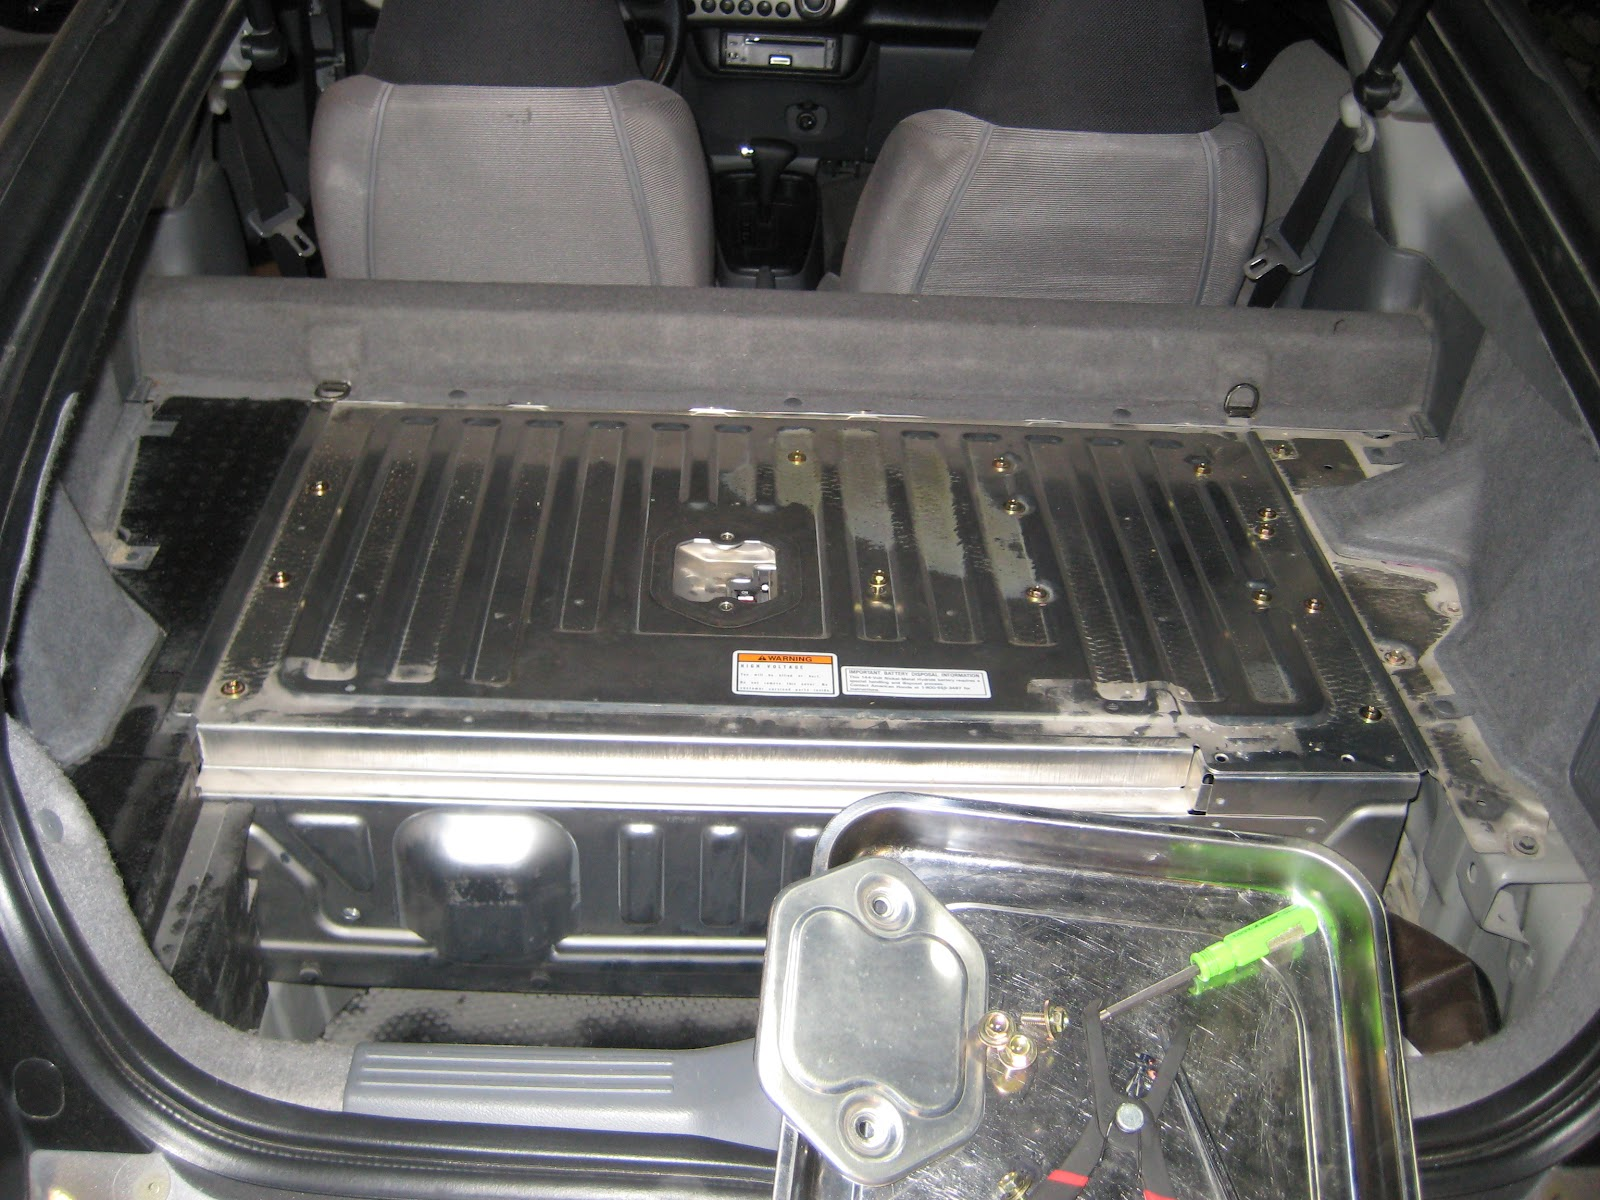 Hv Battery Is Found In The Back Trunk There A Center Plate That Opens For Disable Switch